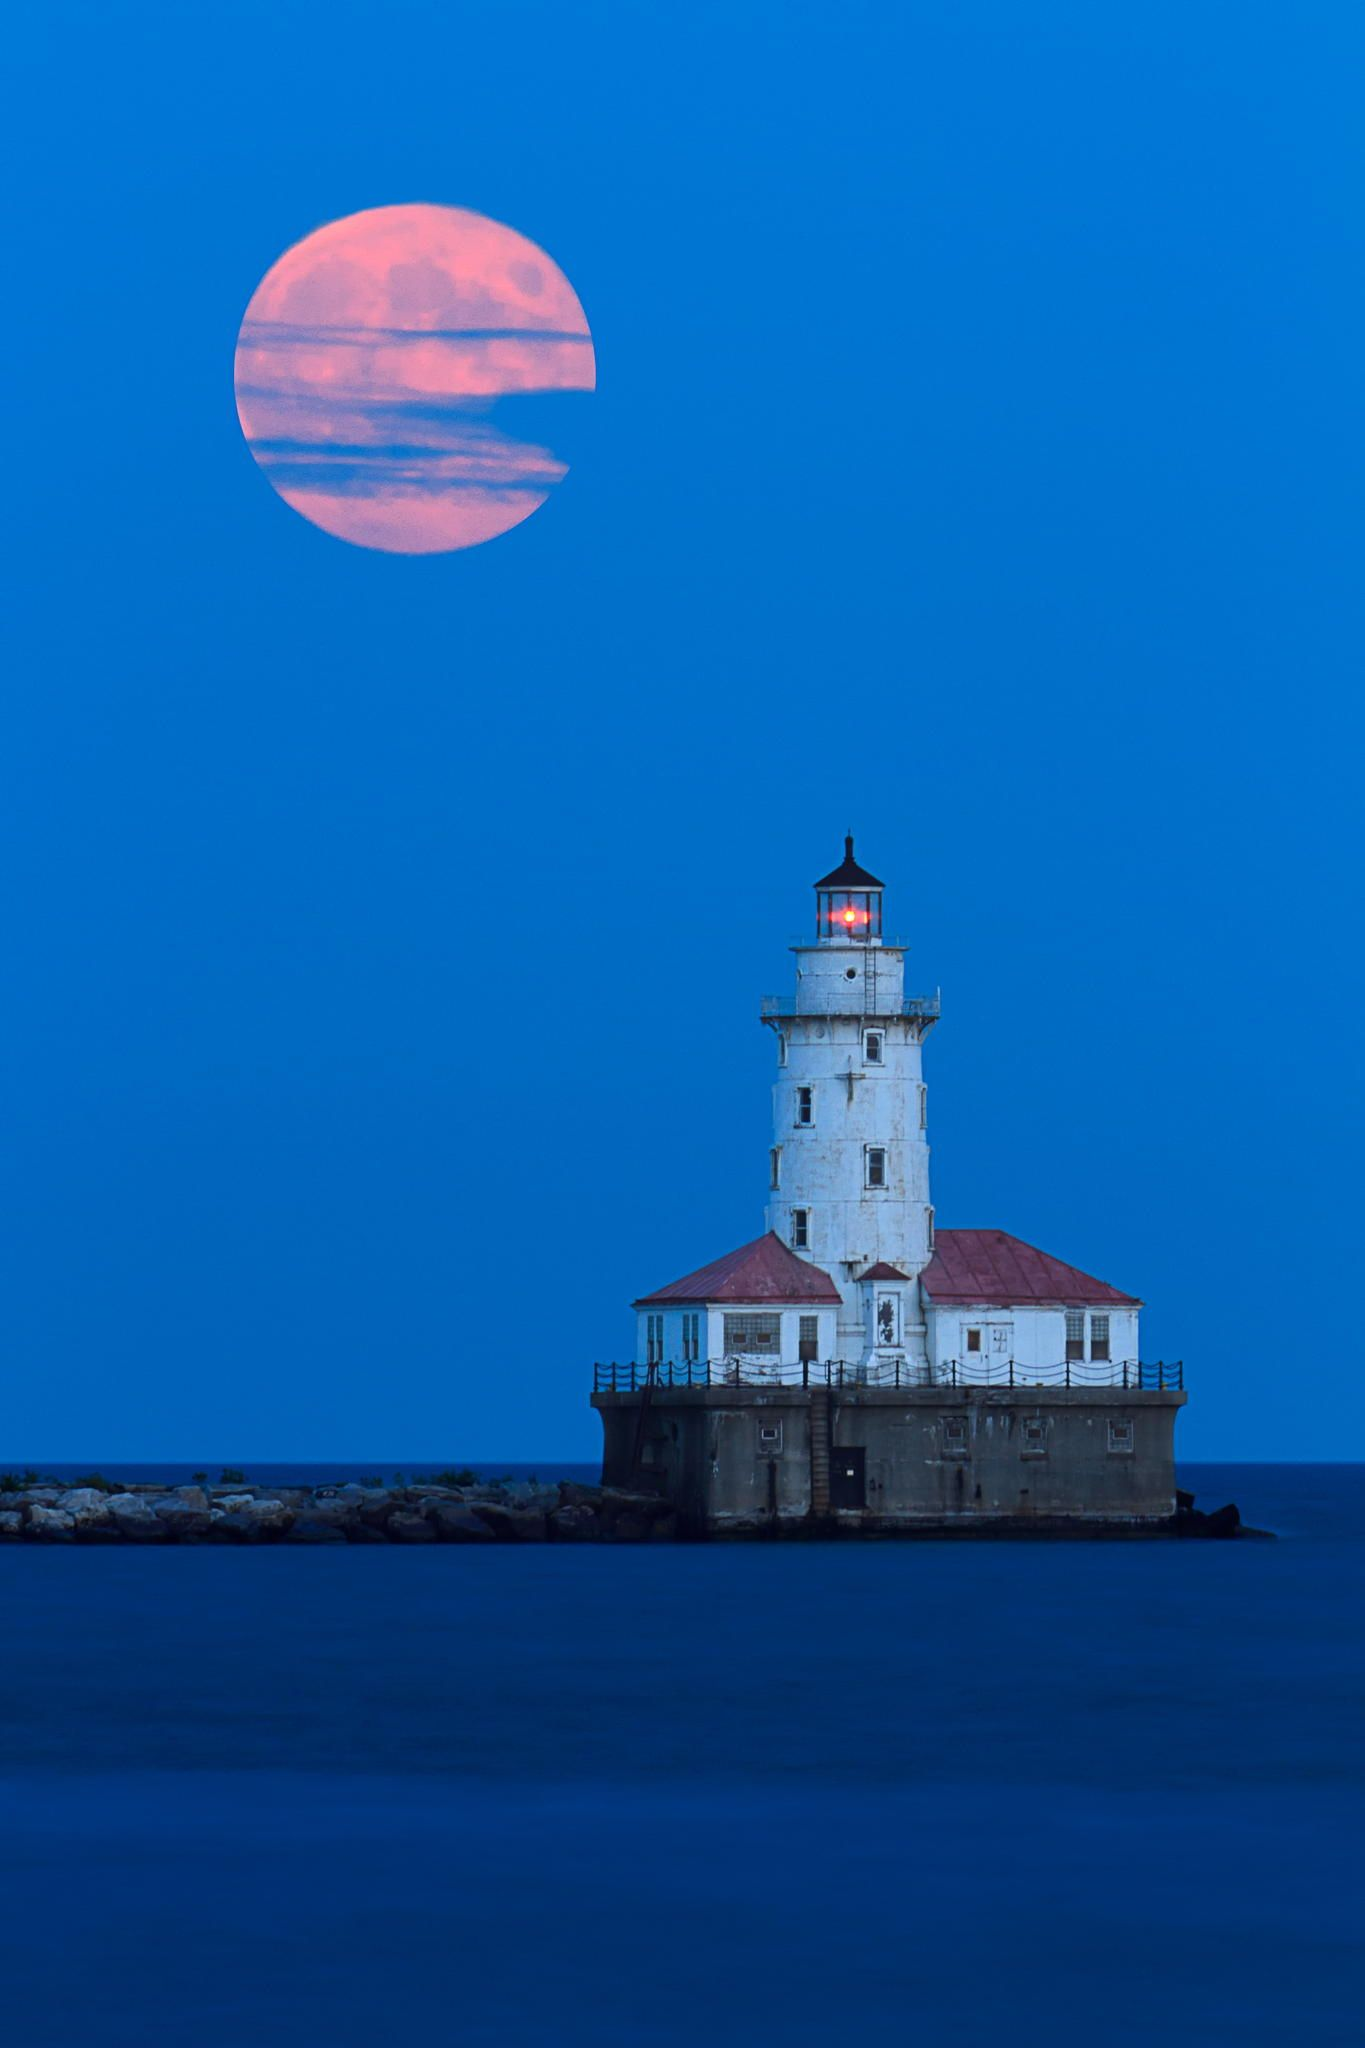 Full moon rising over the Chicago Harbor Lighthouse.